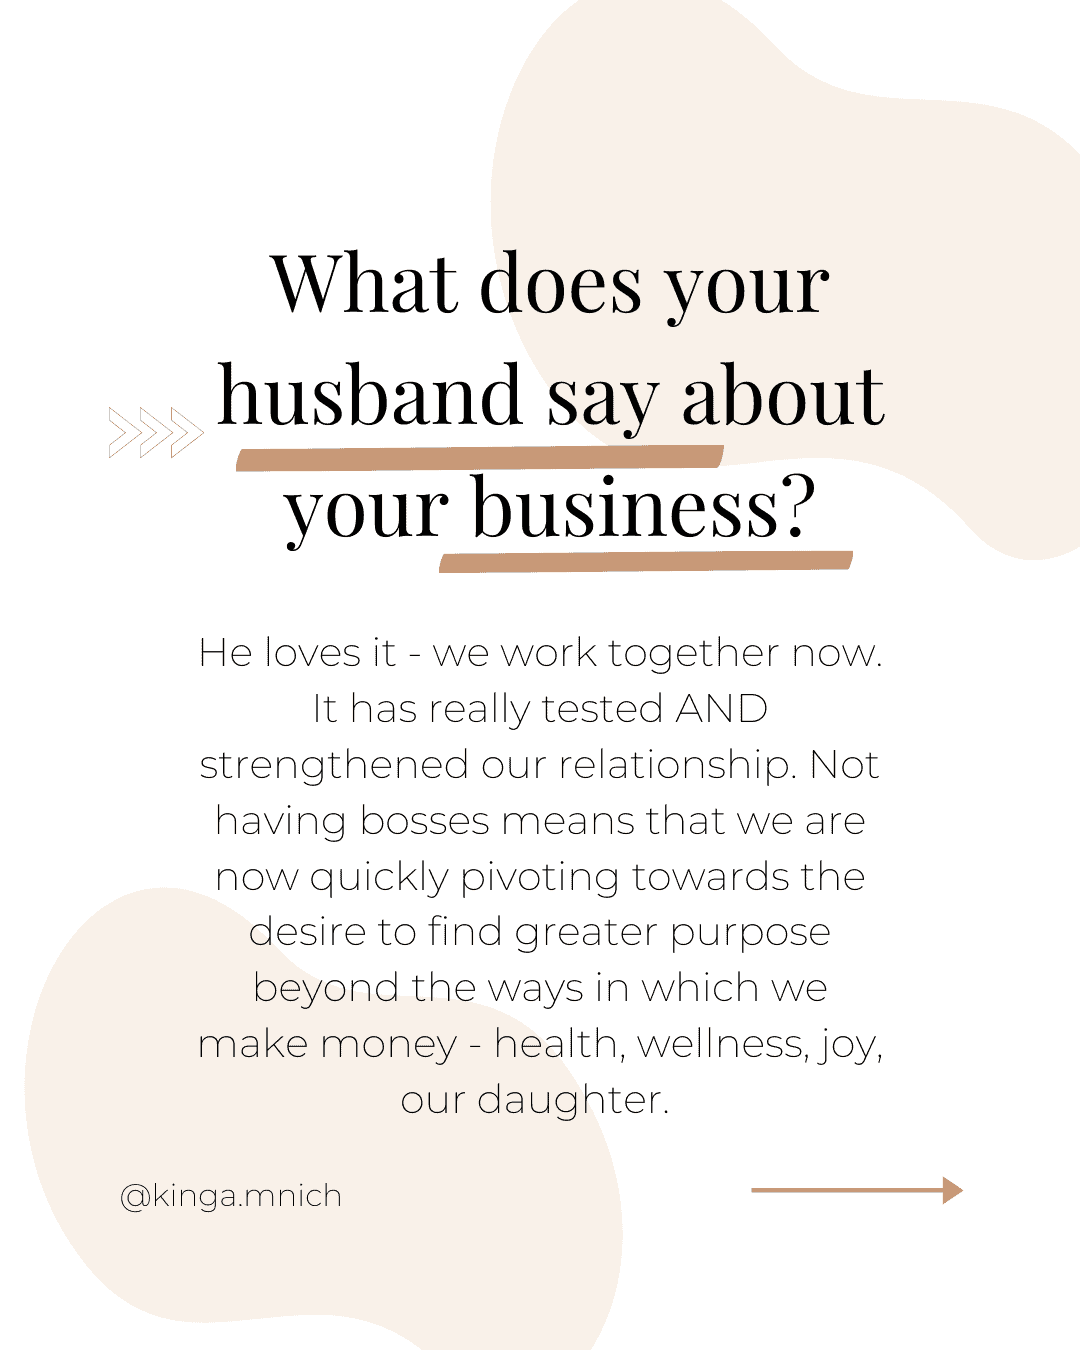 Her husband supports her business.